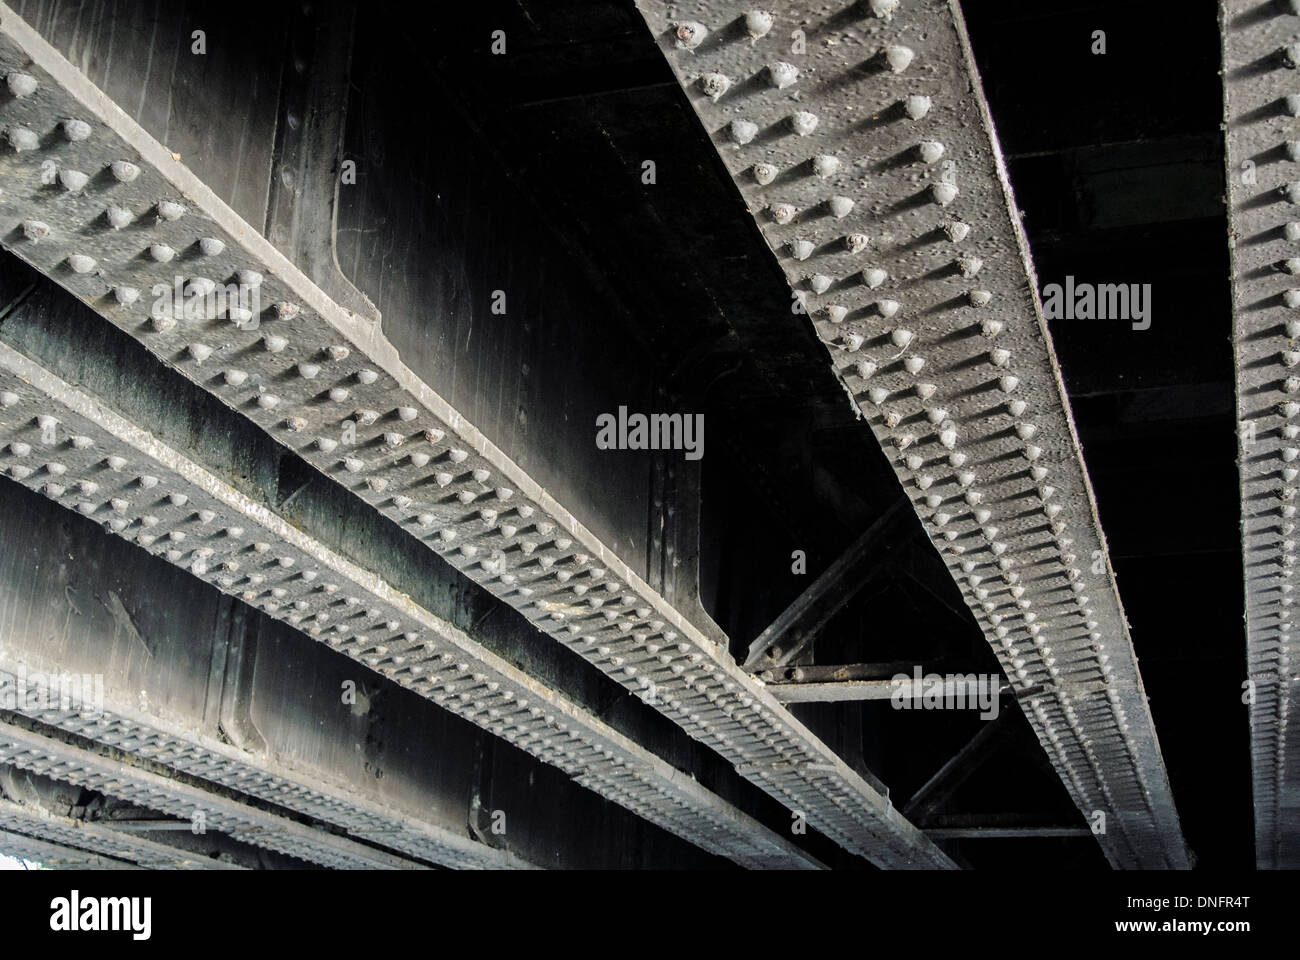 Metal rivets and girders on underside of bridge Stock Photo